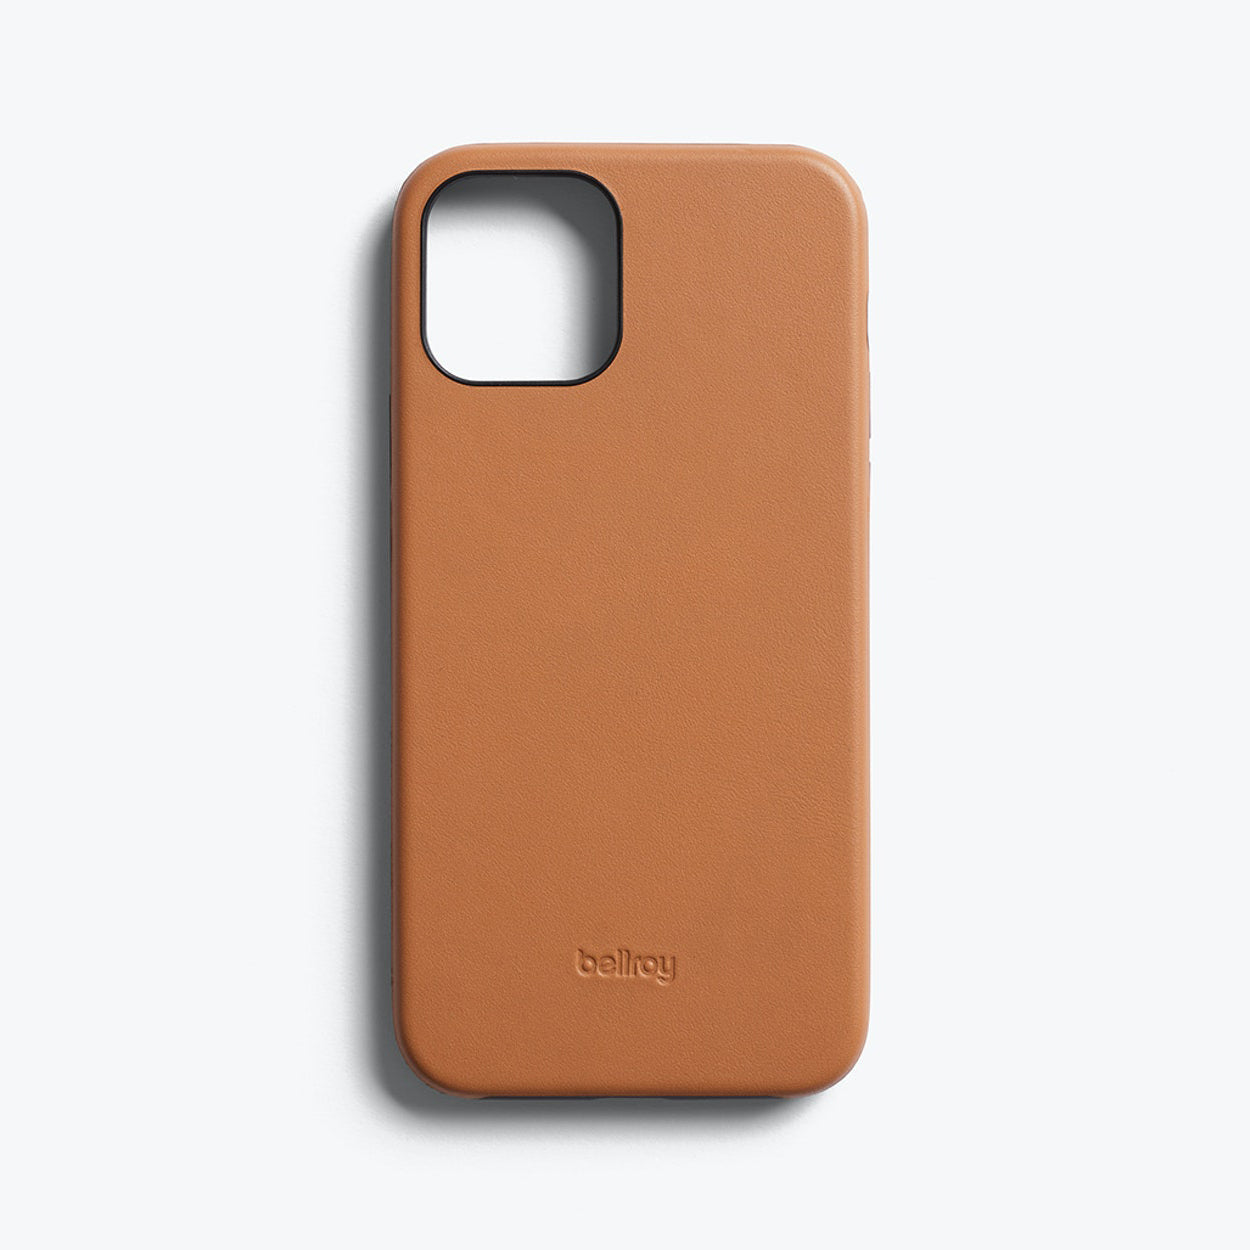 Bellroy Slim Genuine Leather Case For iPhone iPhone 12 mini - TOFFEE